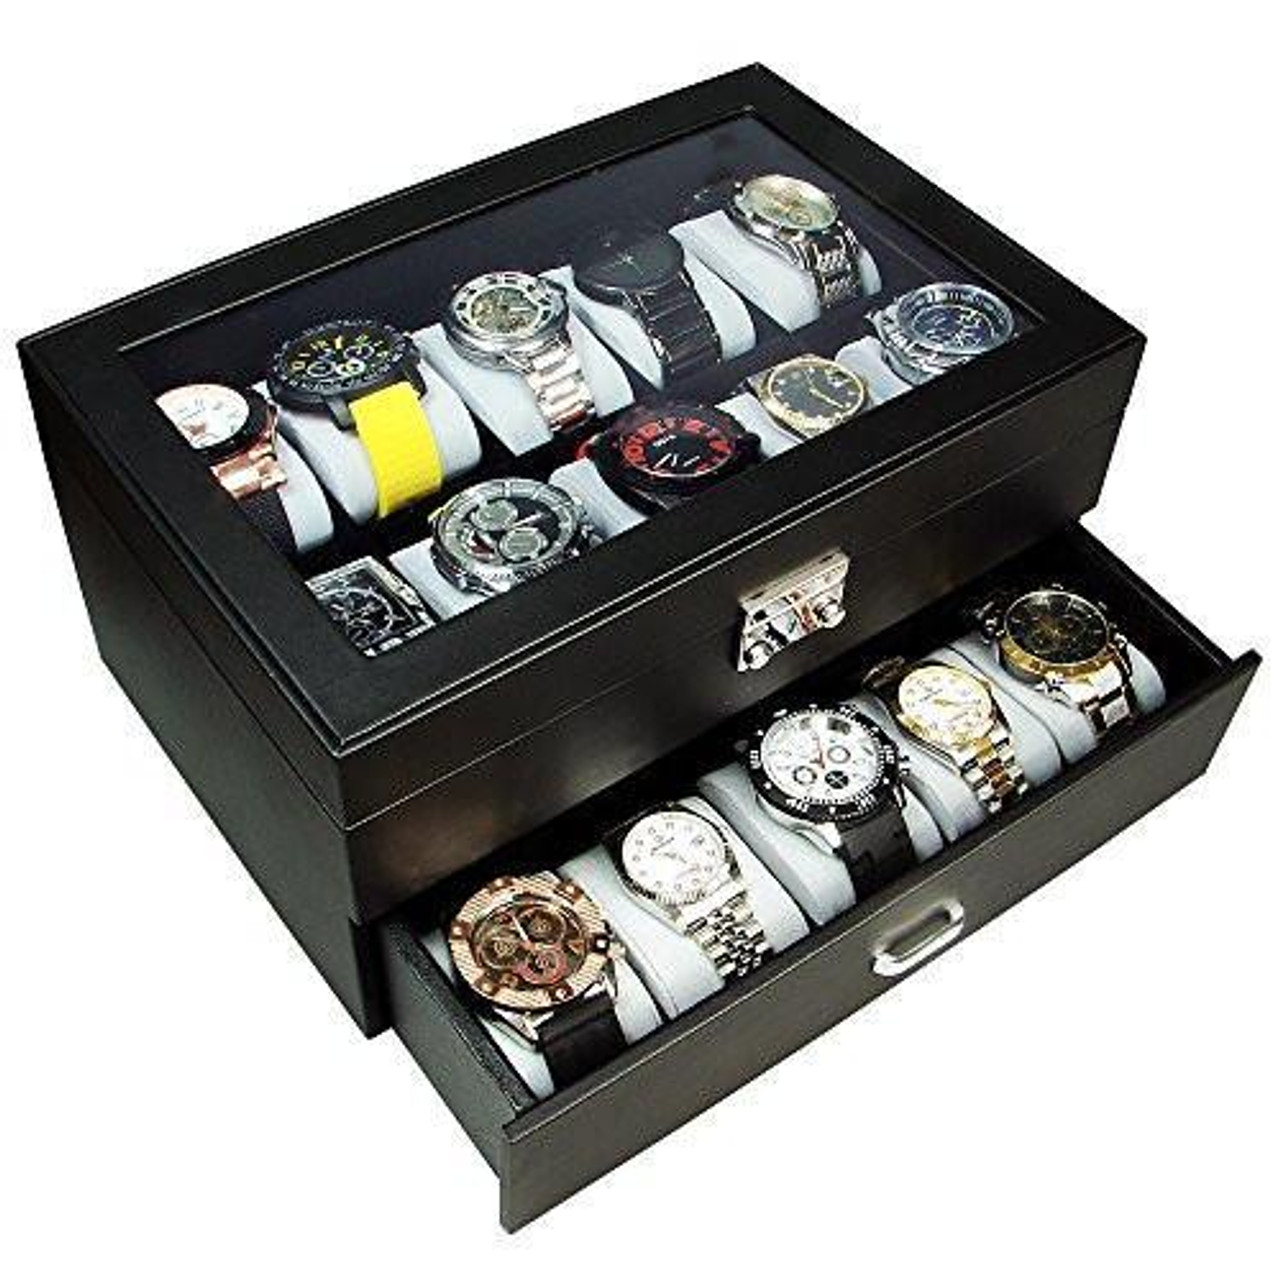 Watch Display Boxes/Cases